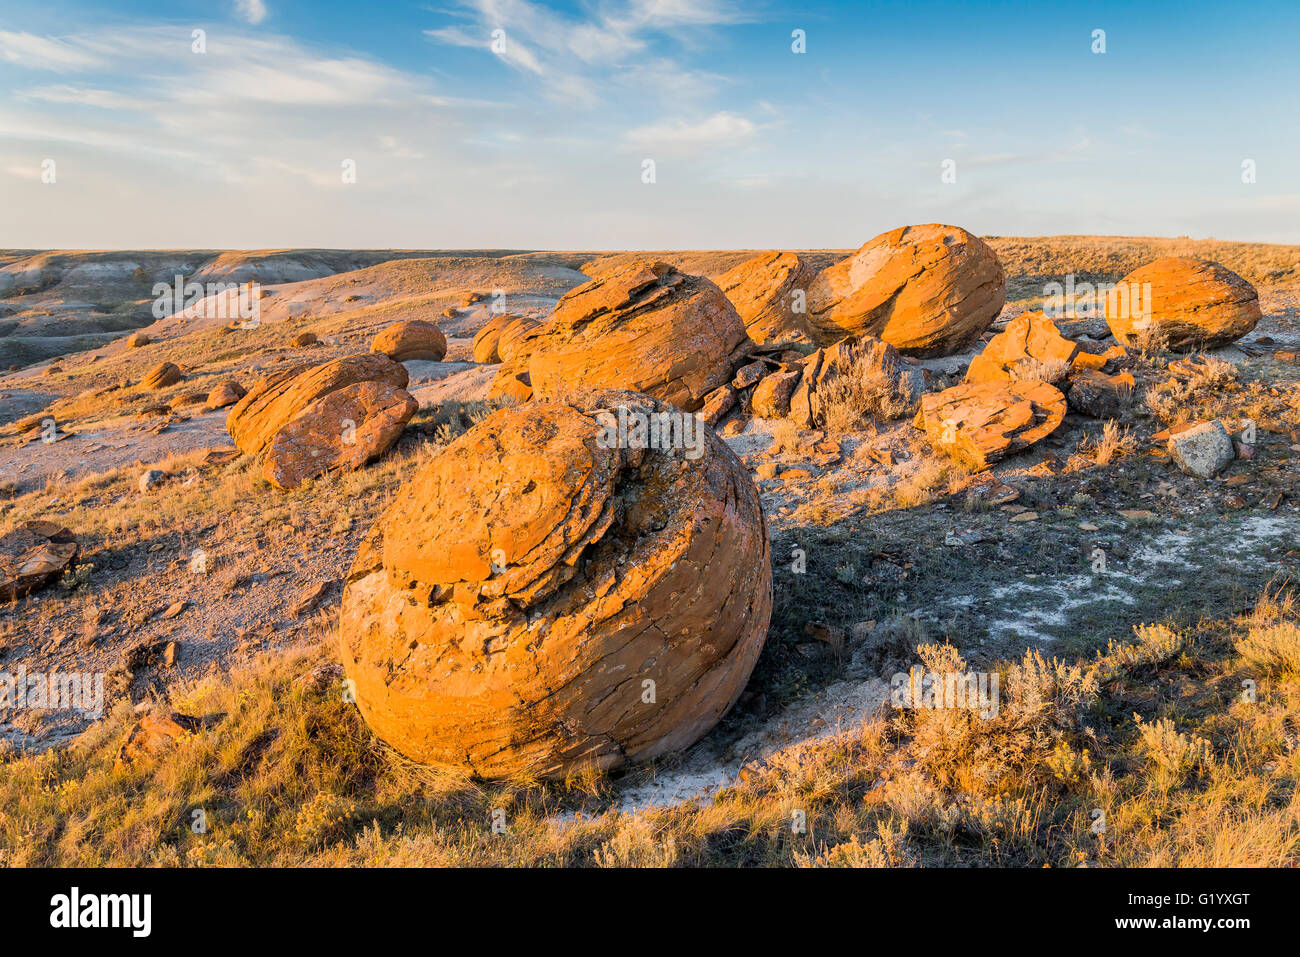 Large sandstone concretions, Red Rock Coulee Natural Area, Alberta, Canada - Stock Image